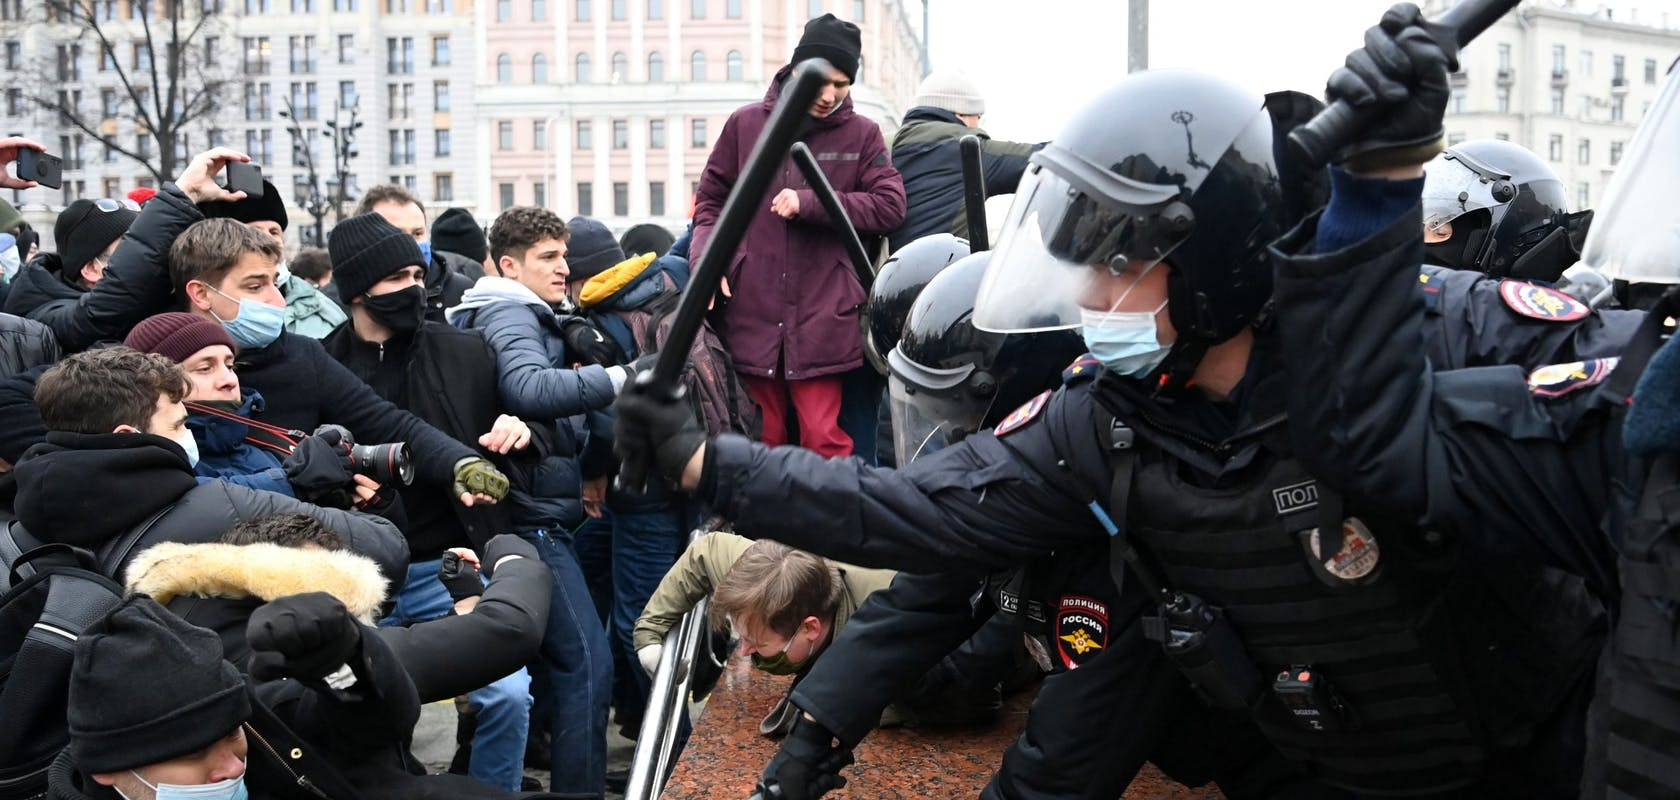 5ab103ff-9e77-453b-bd44-e163d3388cb6_Russie-manifestations-Navalny-getty.jpg?auto=compress,format&rect=0,0,1920,914&w=1680&h=800